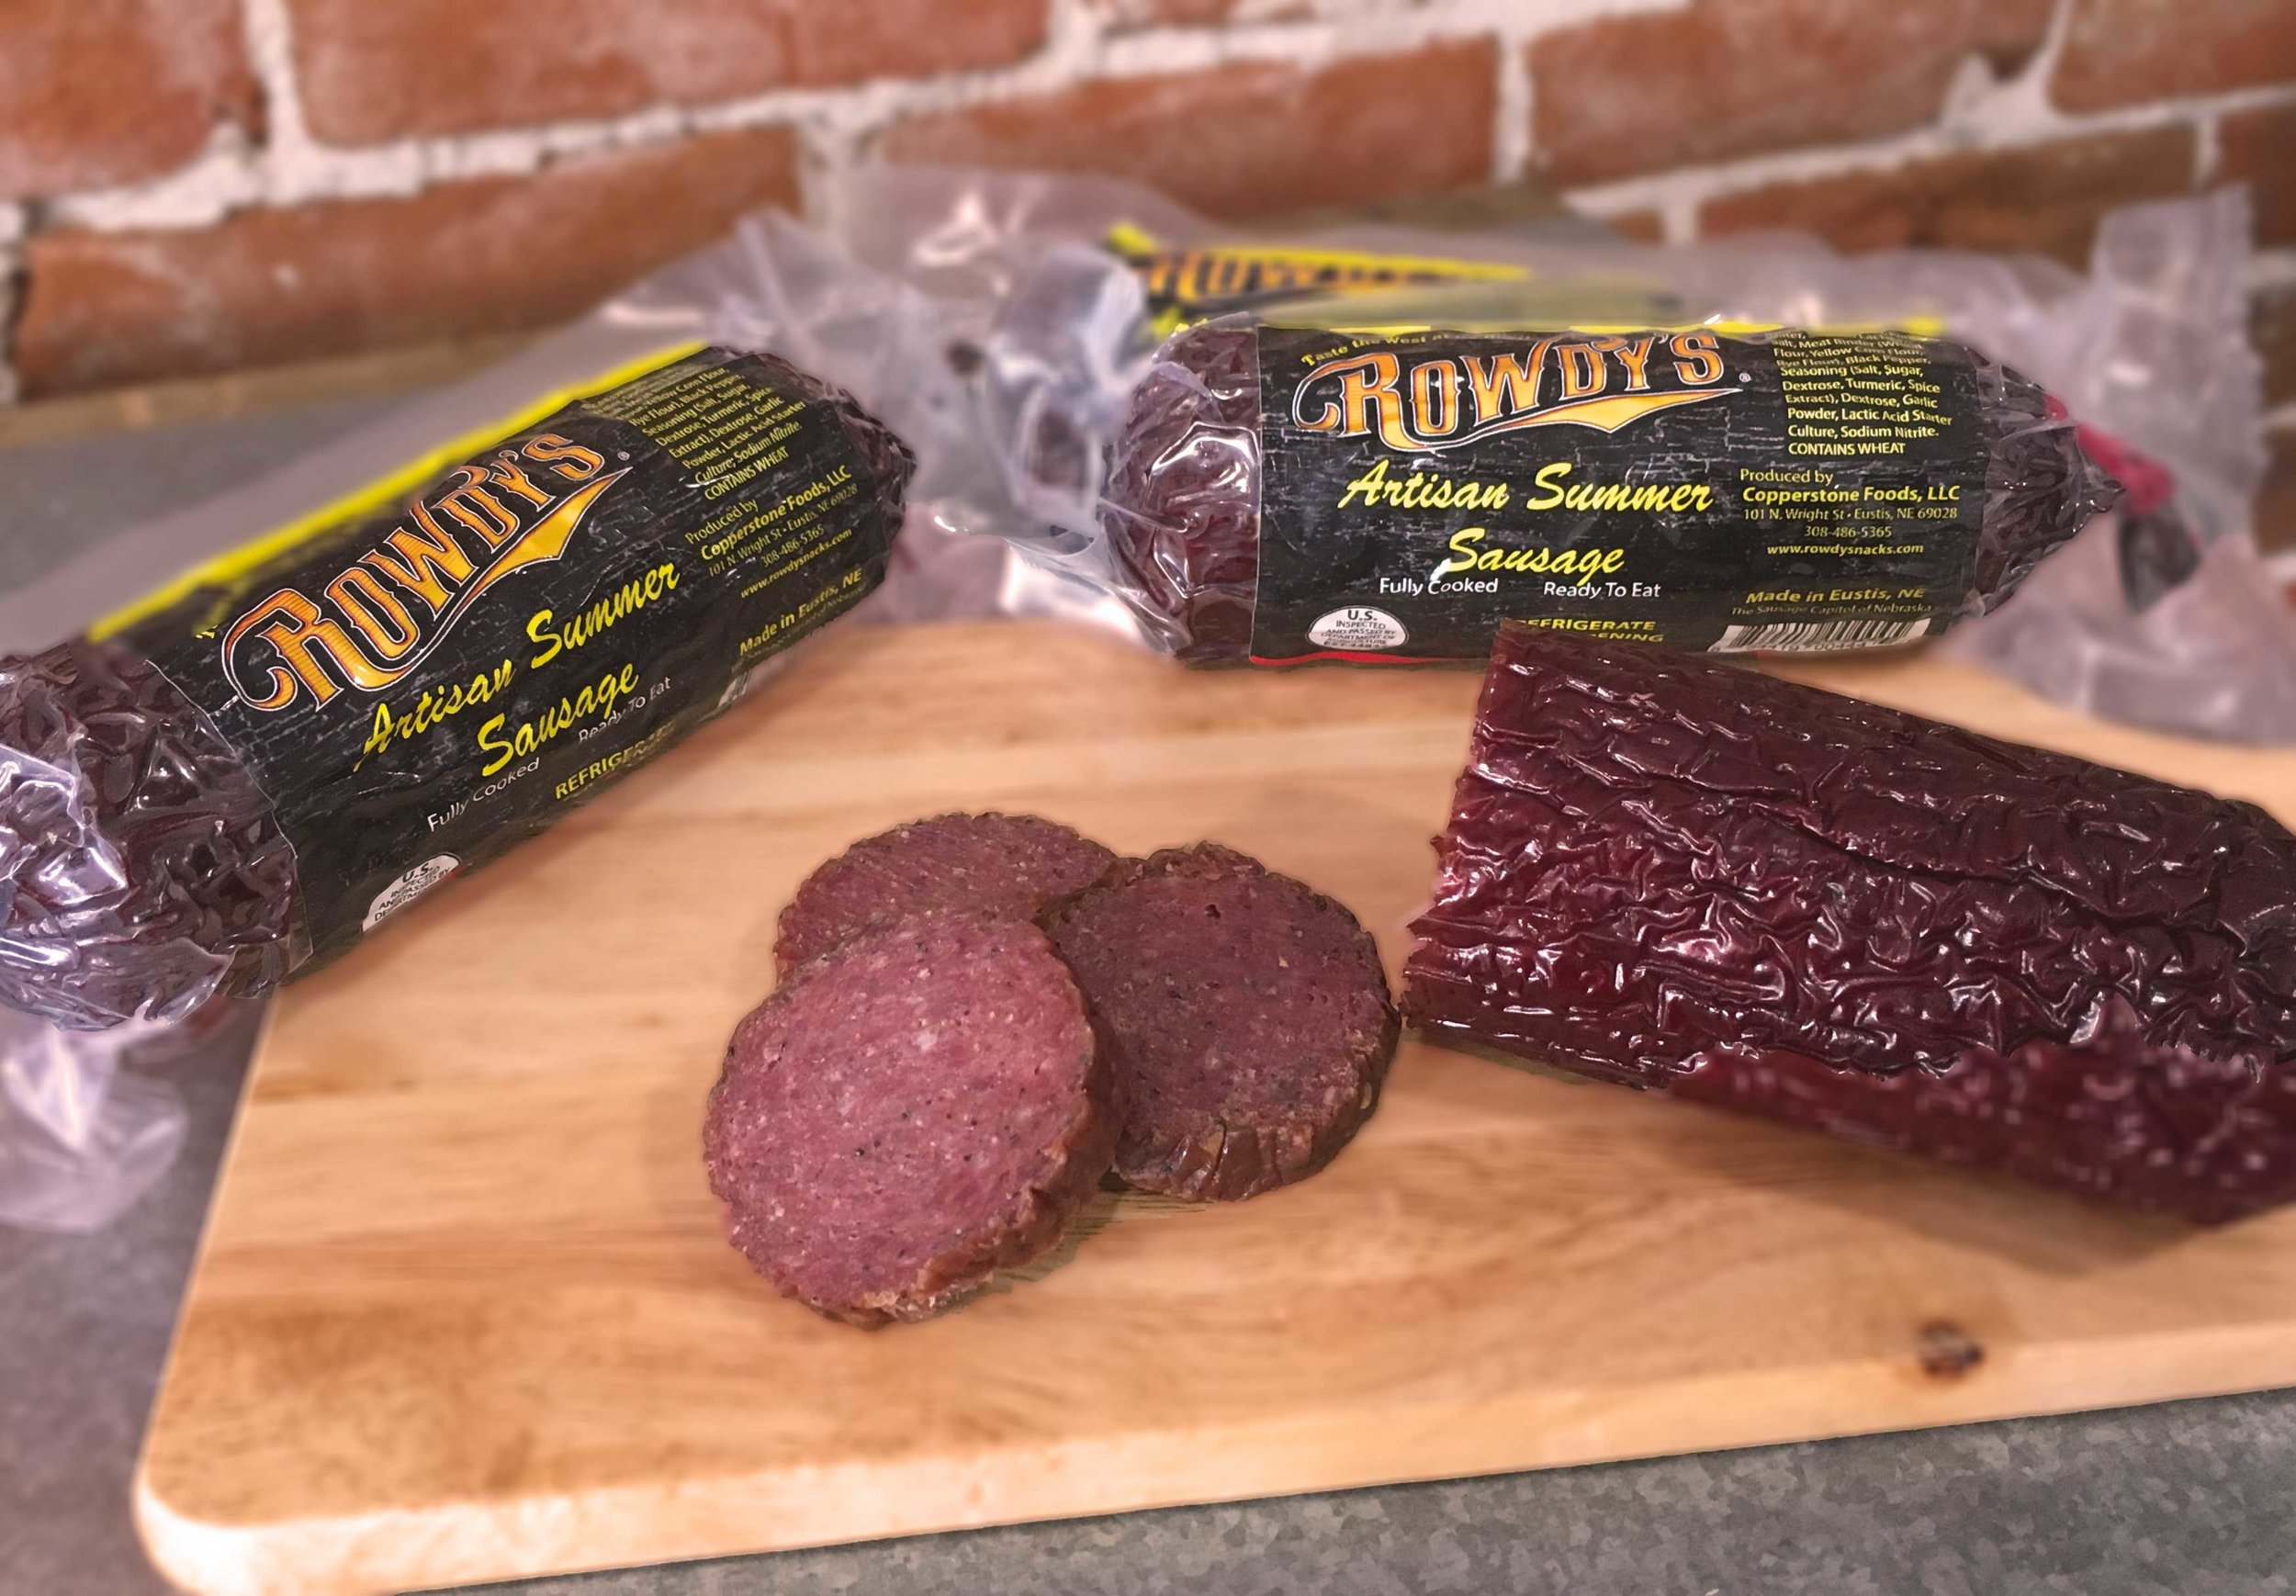 """Rowdy's Artisan Summer Sausage   – Perfect for snacking or entertaining. Enjoy the mild smoky flavor and it's lower in fat so there's no """"tallow"""" taste. German through and through! Does not need refrigeration until opened. Available locally at Knowlen & Yates and Citta' Deli.    $8.79 / chub (8 oz/chub)"""